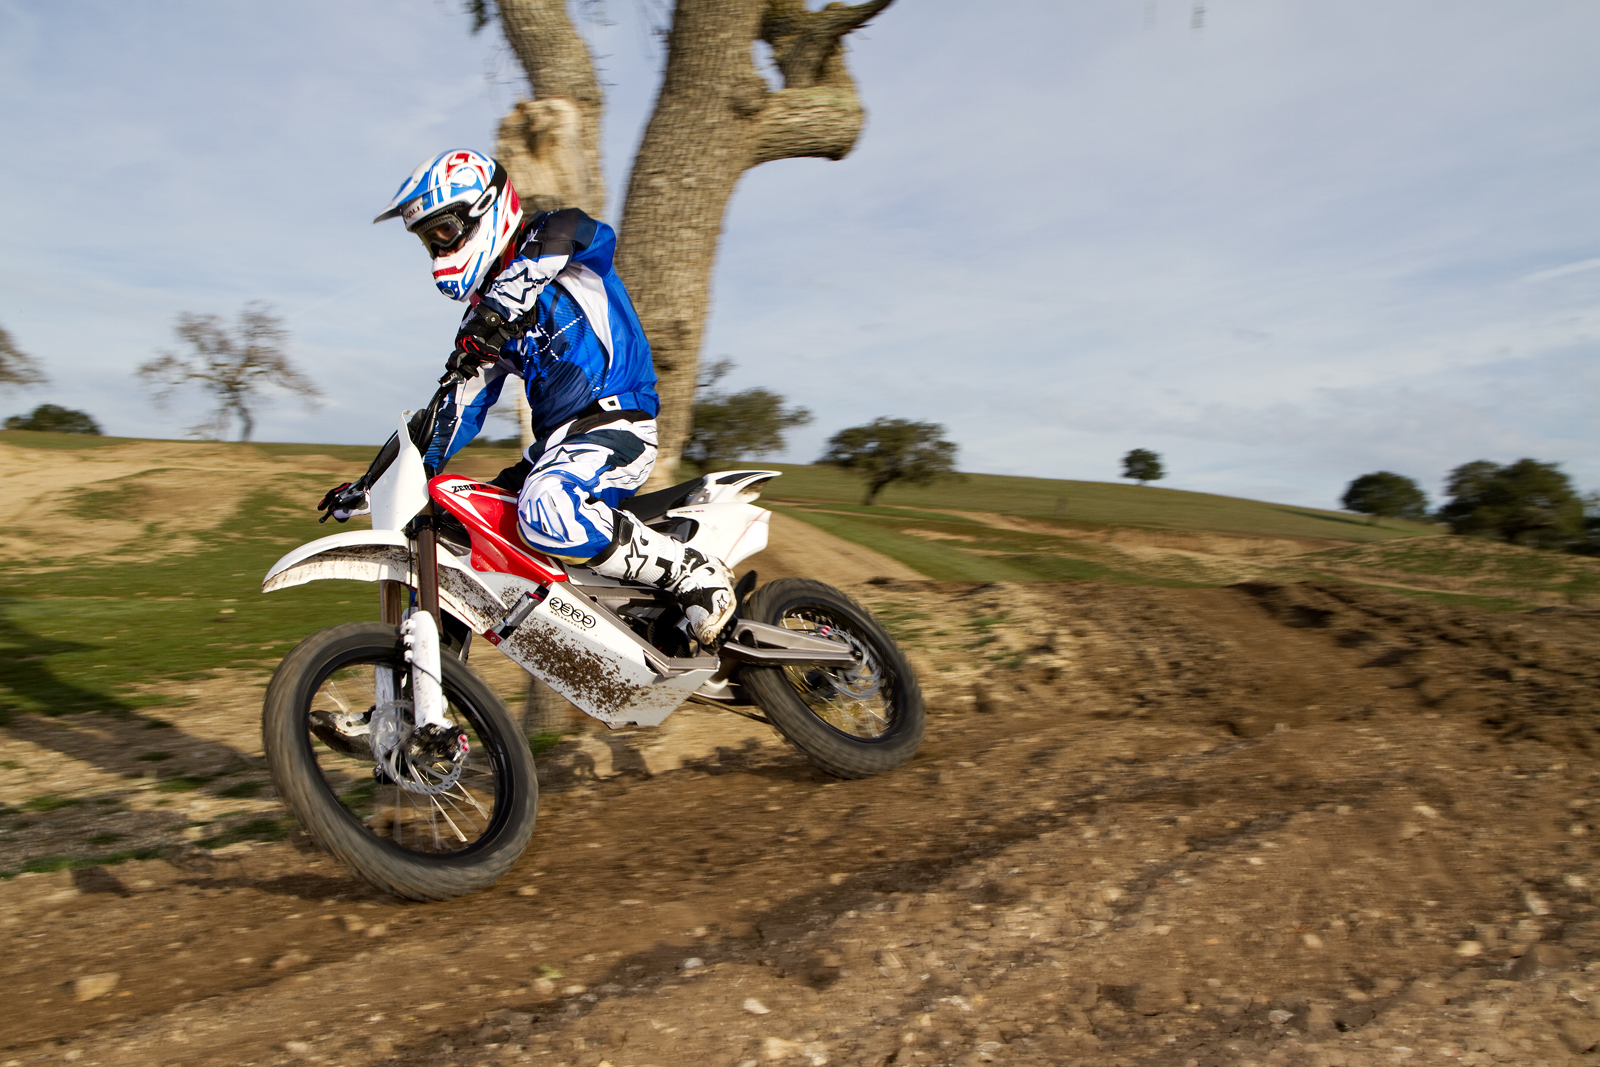 2010 Zero MX Electric Motorcycle: Zaca Station - Cruising